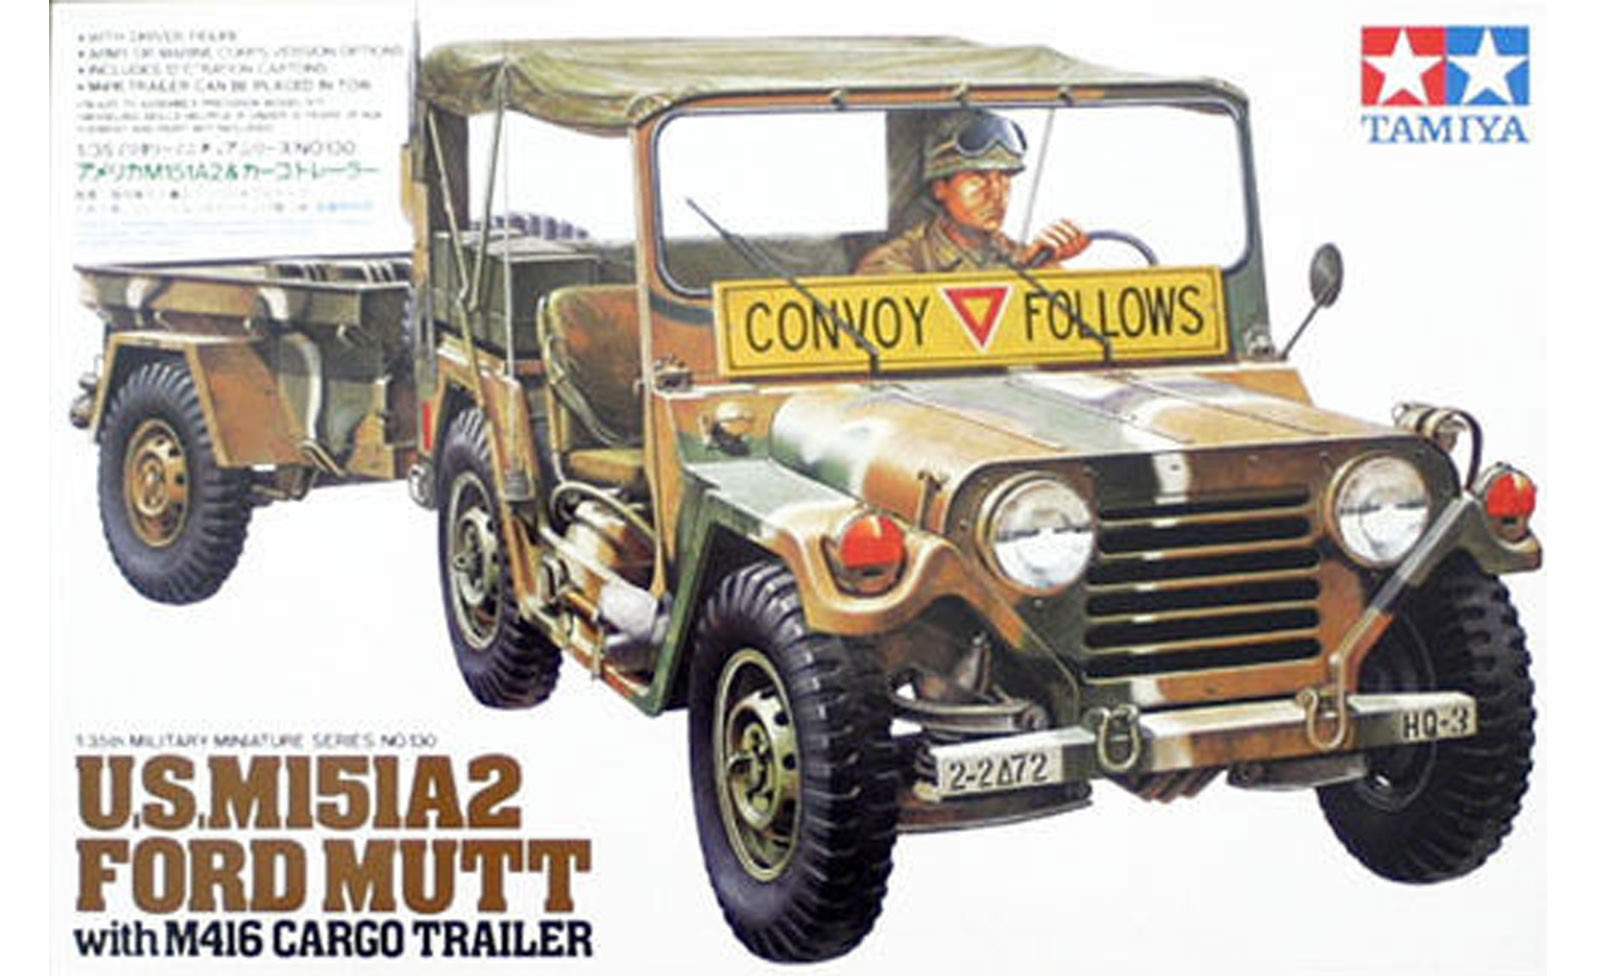 U.S. Allied Ford Mutt with M416 Trailer - Tamiya 35130 - plastic model kit - 1/35 scale